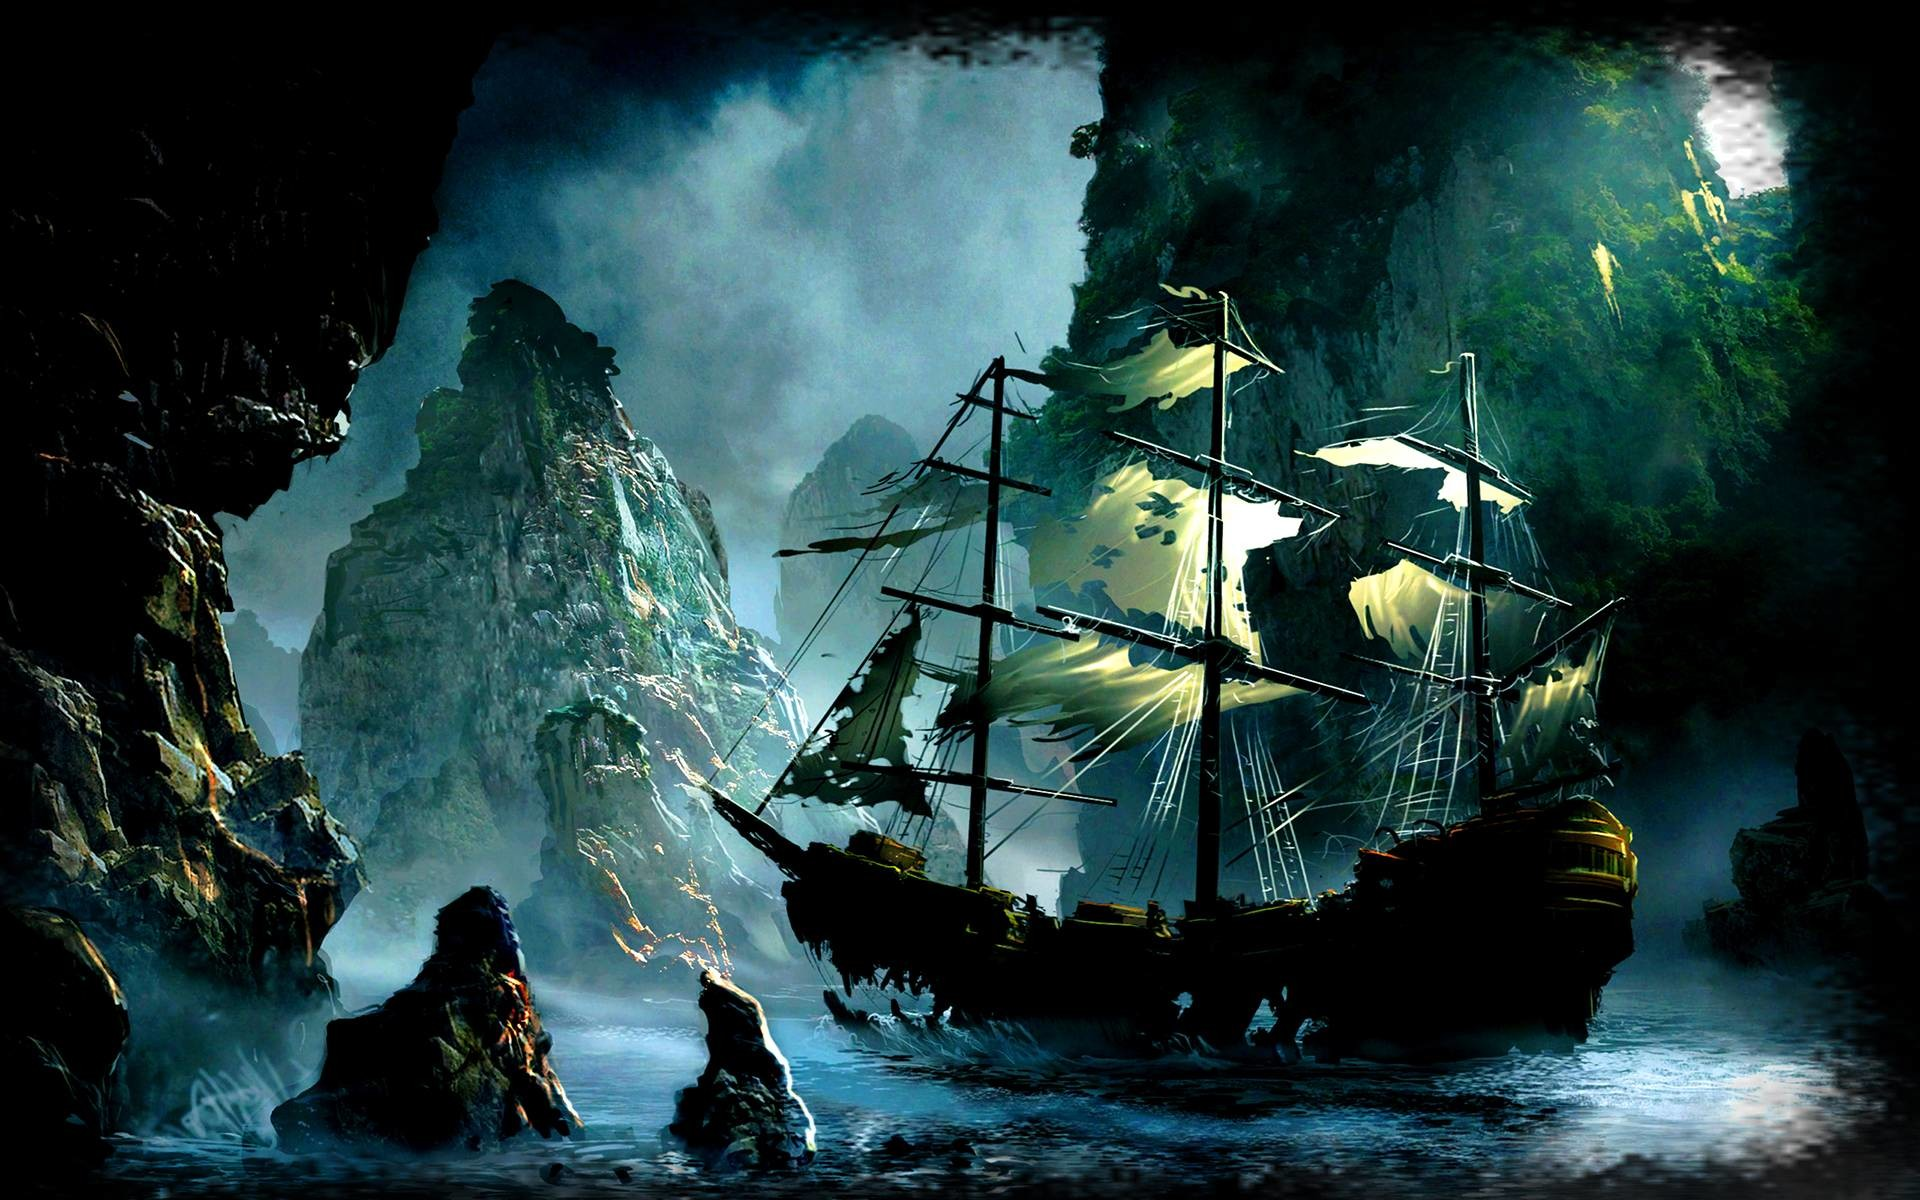 Ghost Pirate Ship Wallpaper 67 images 1920x1200